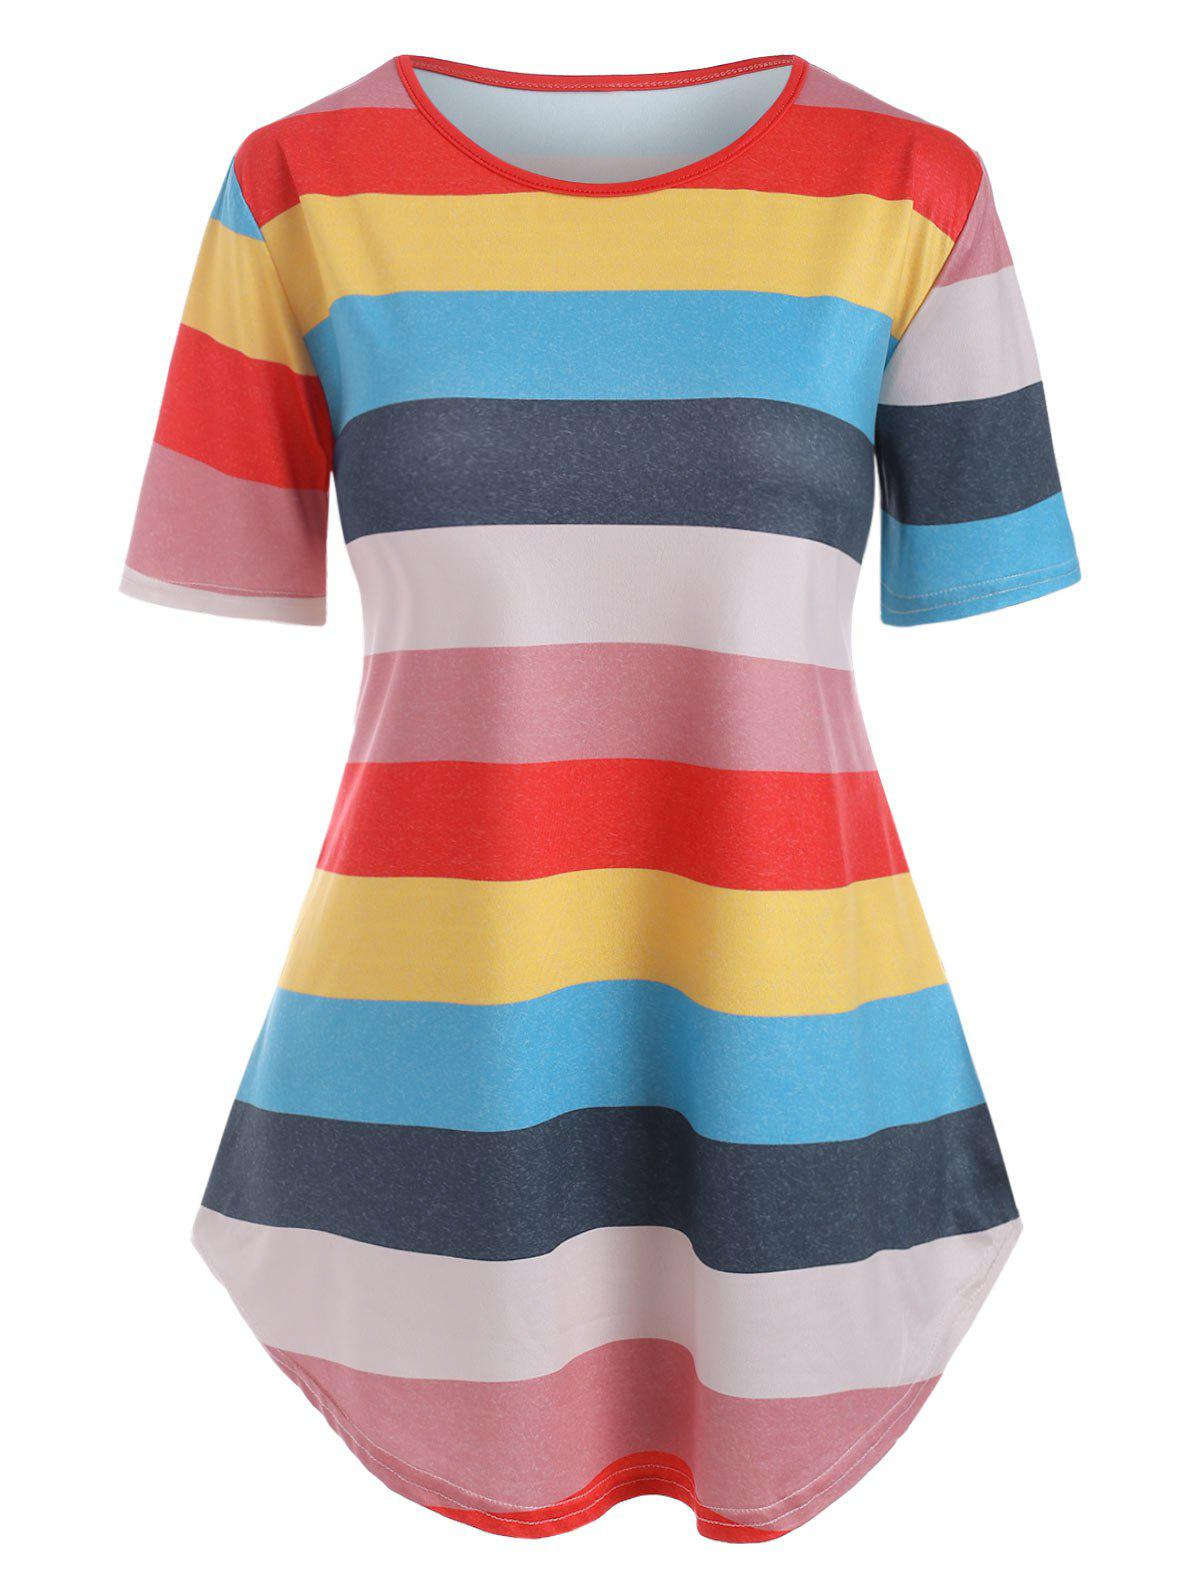 Curved Hem Colorful Stripes Tee - multicolor S